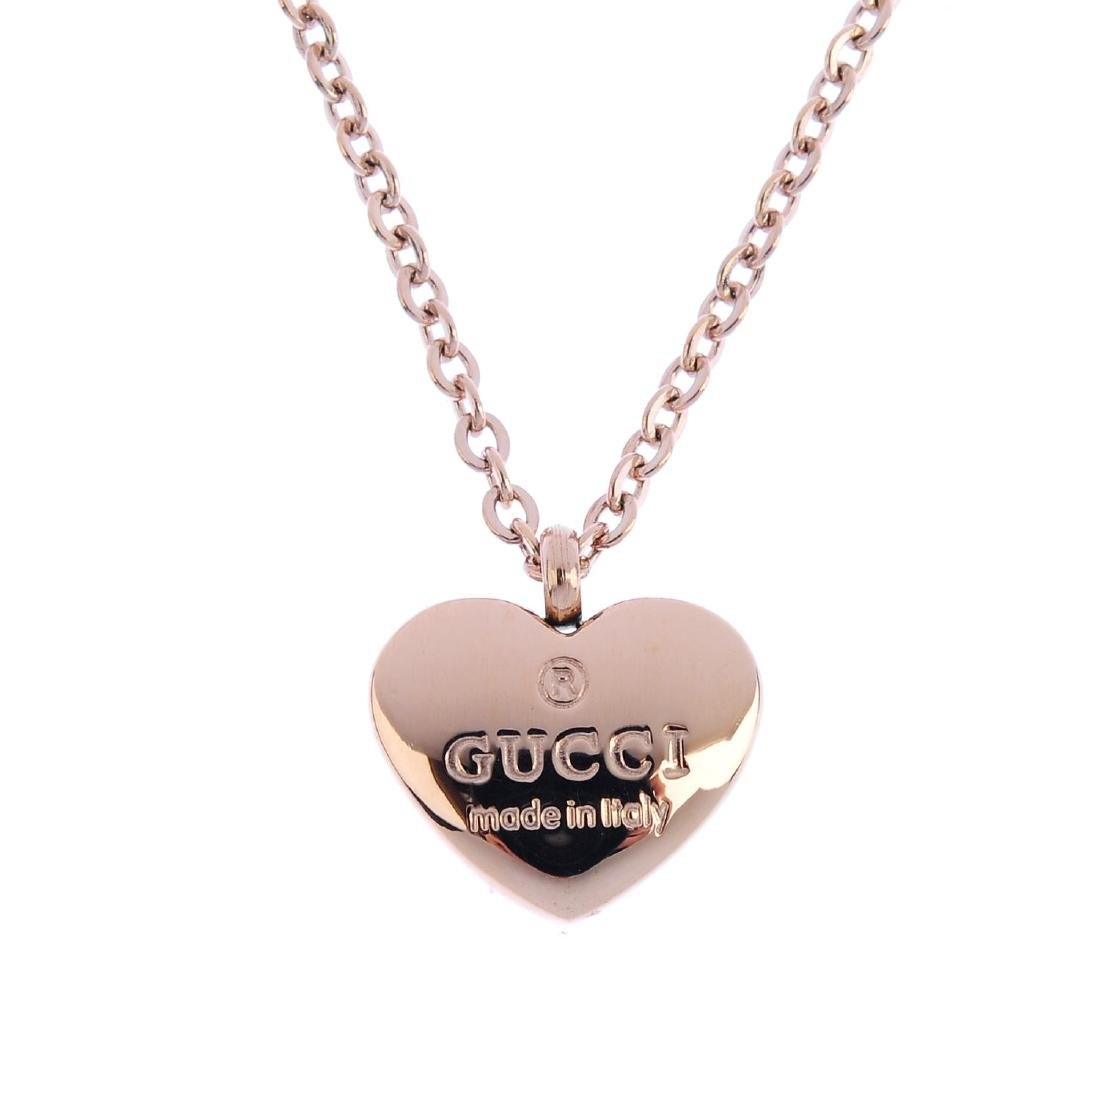 GUCCI - a heart pendant. The heart-shape pendant,